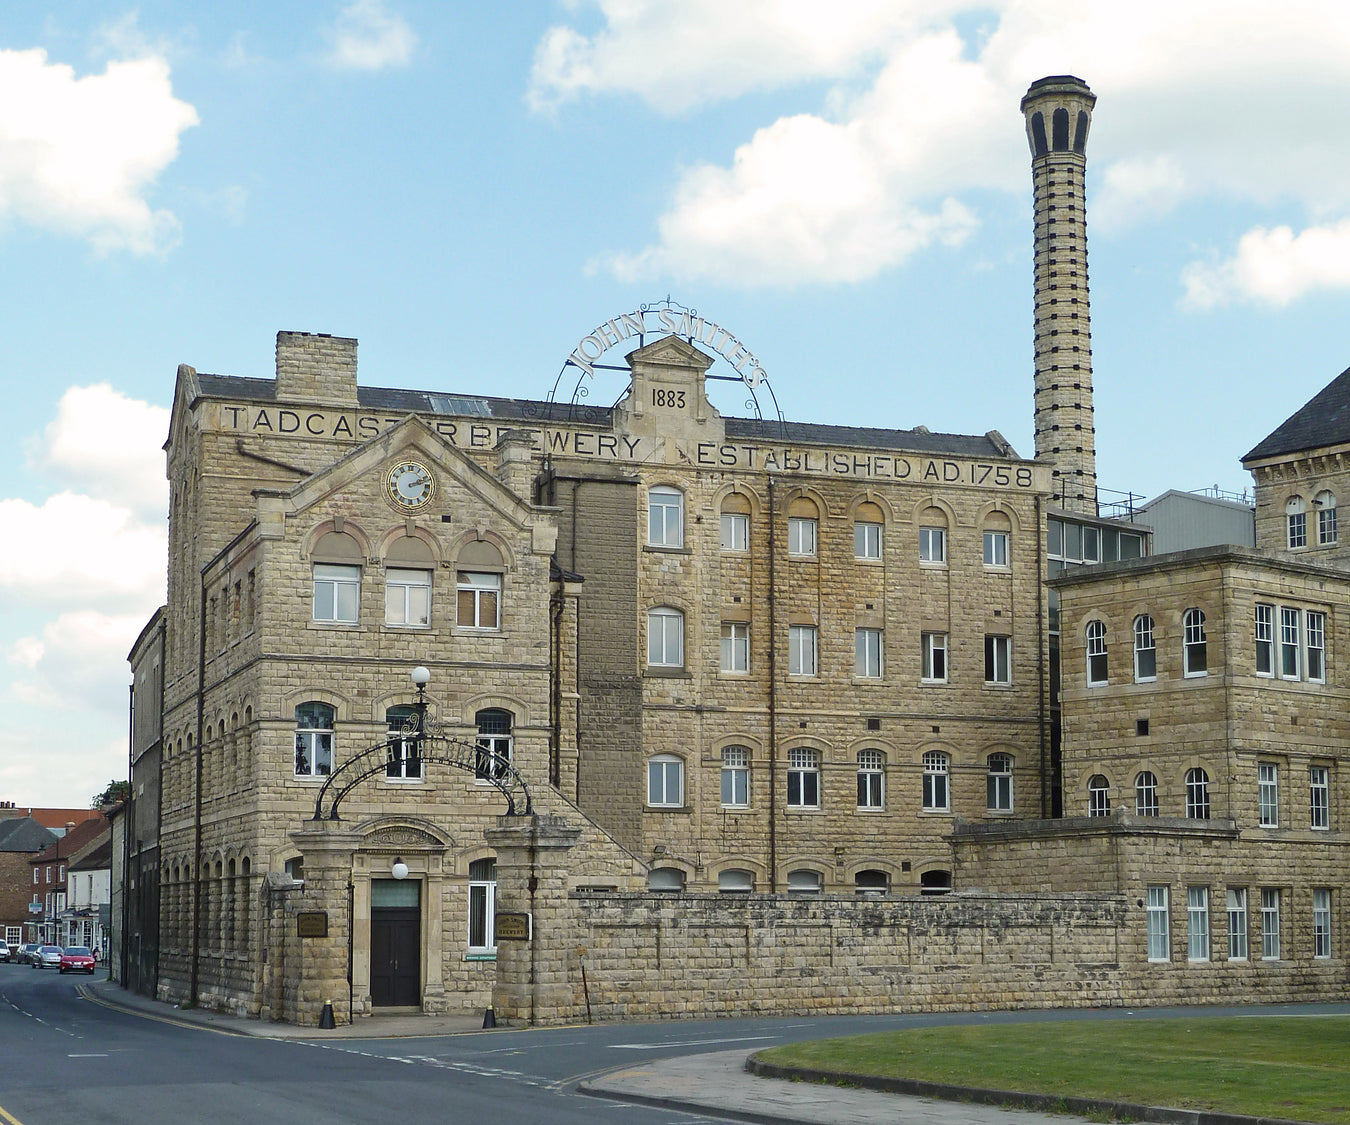 John Smiths / The Brewery